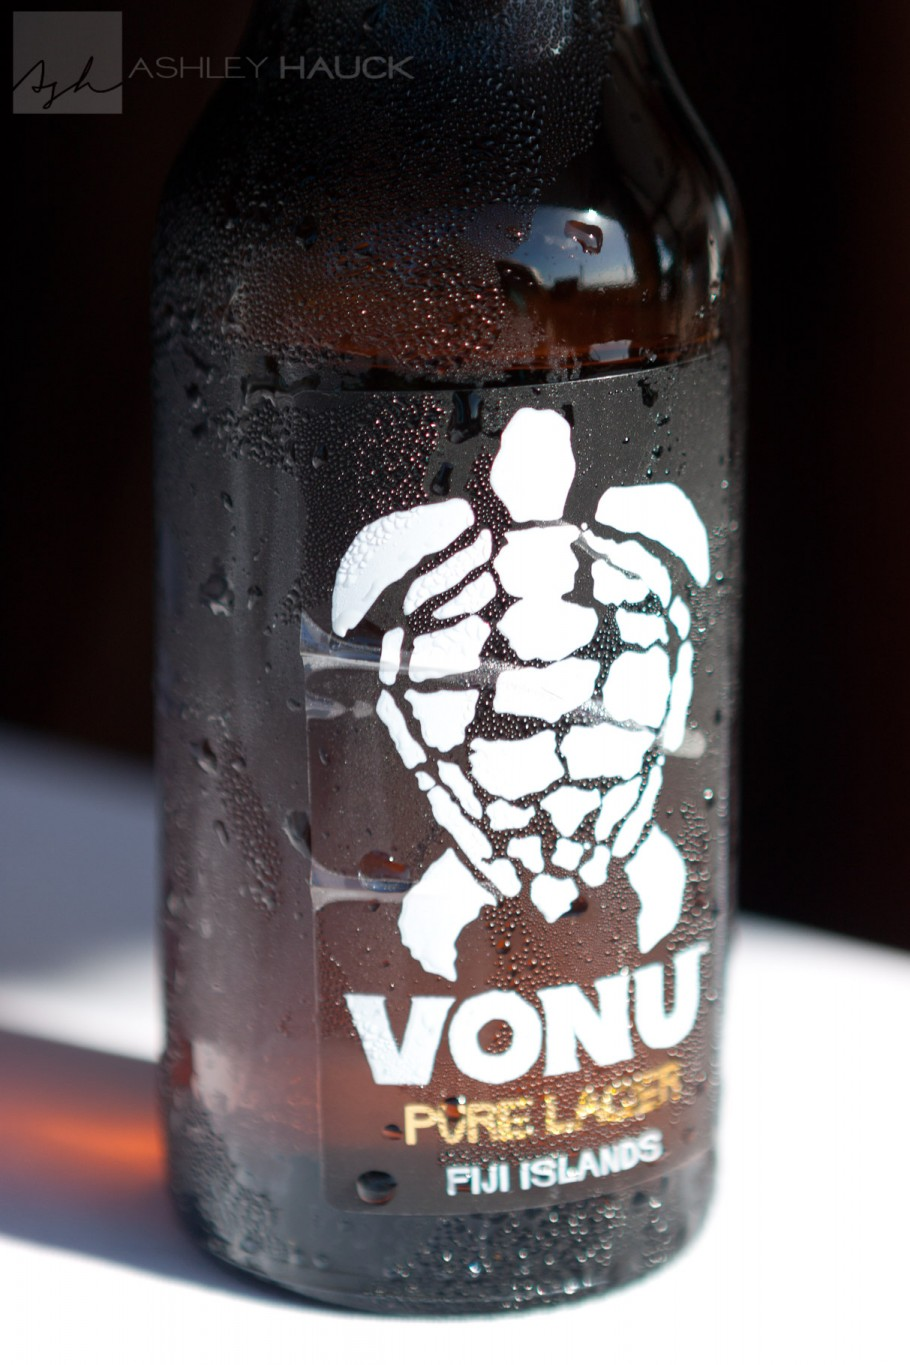 Vonu, local Fijian beer